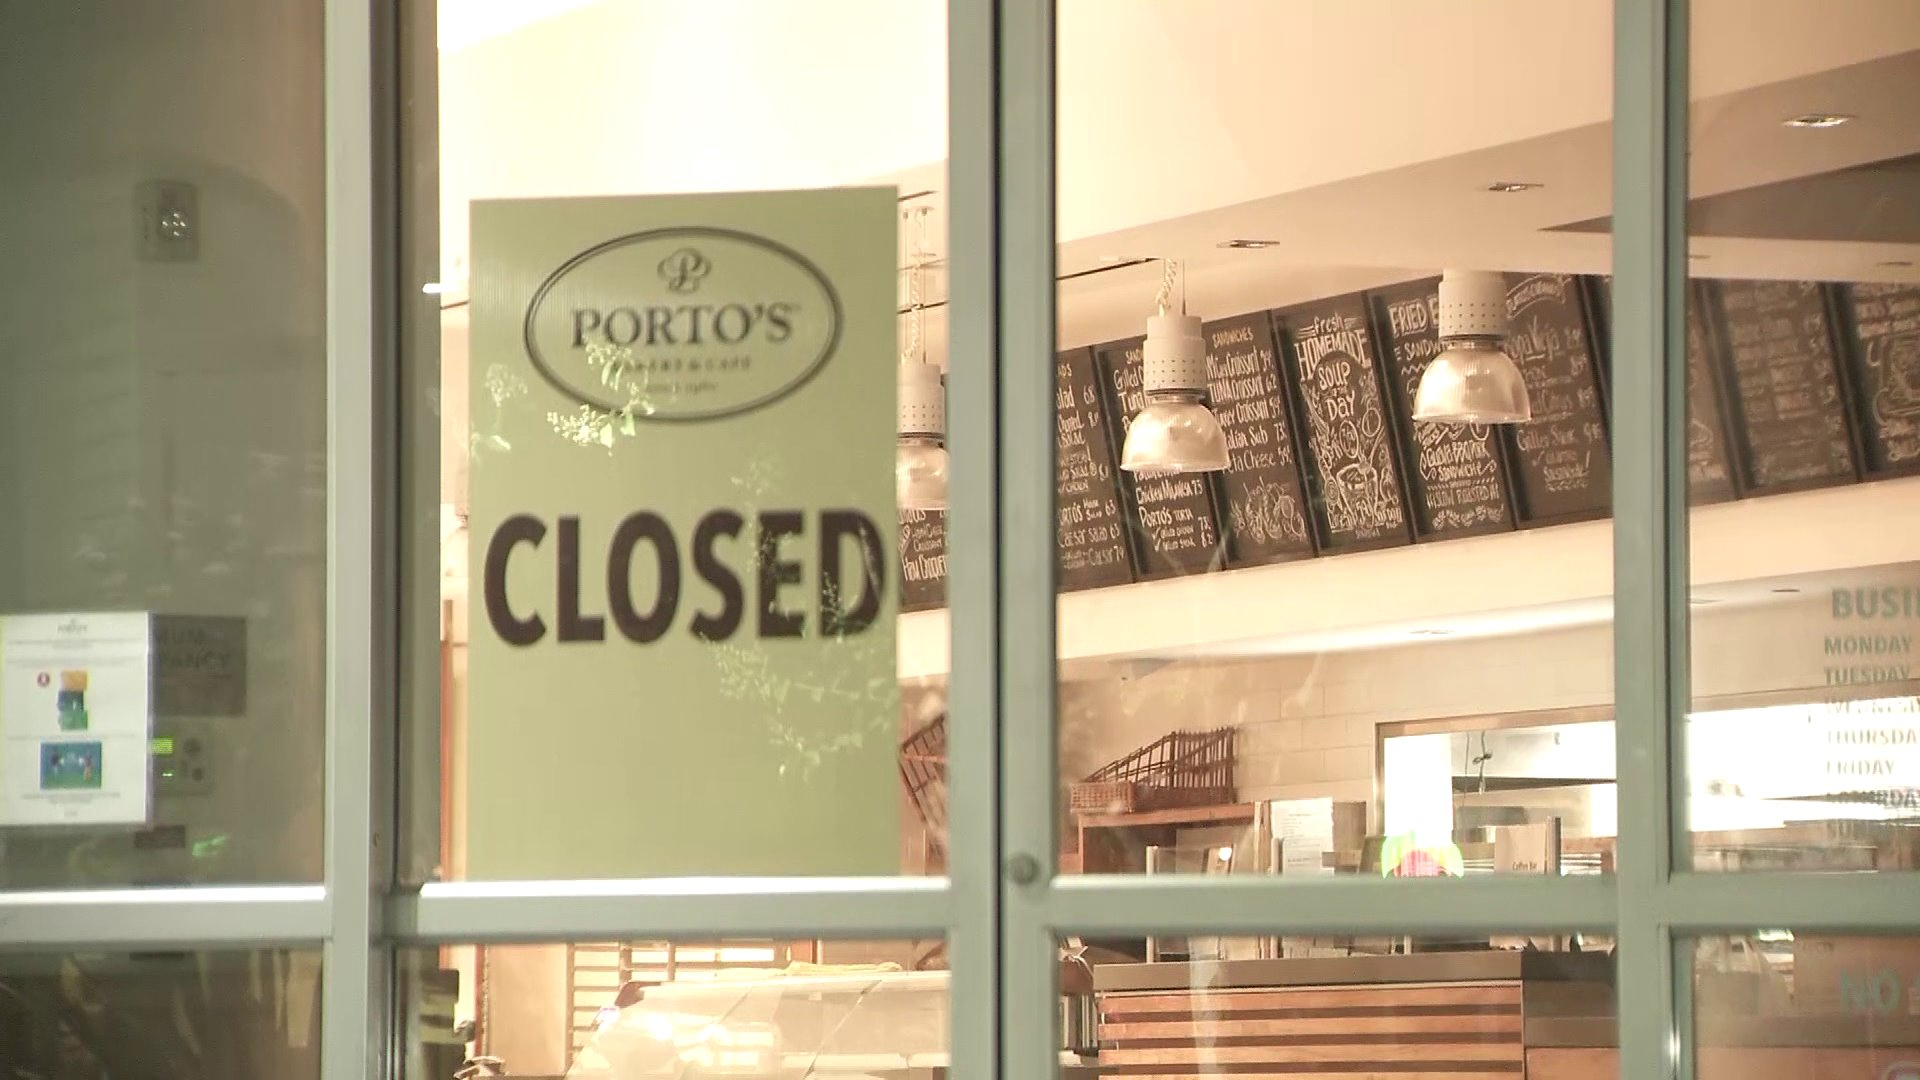 Porto's Bakery in Downey was closed for business on June 26, 2020. (KTLA)